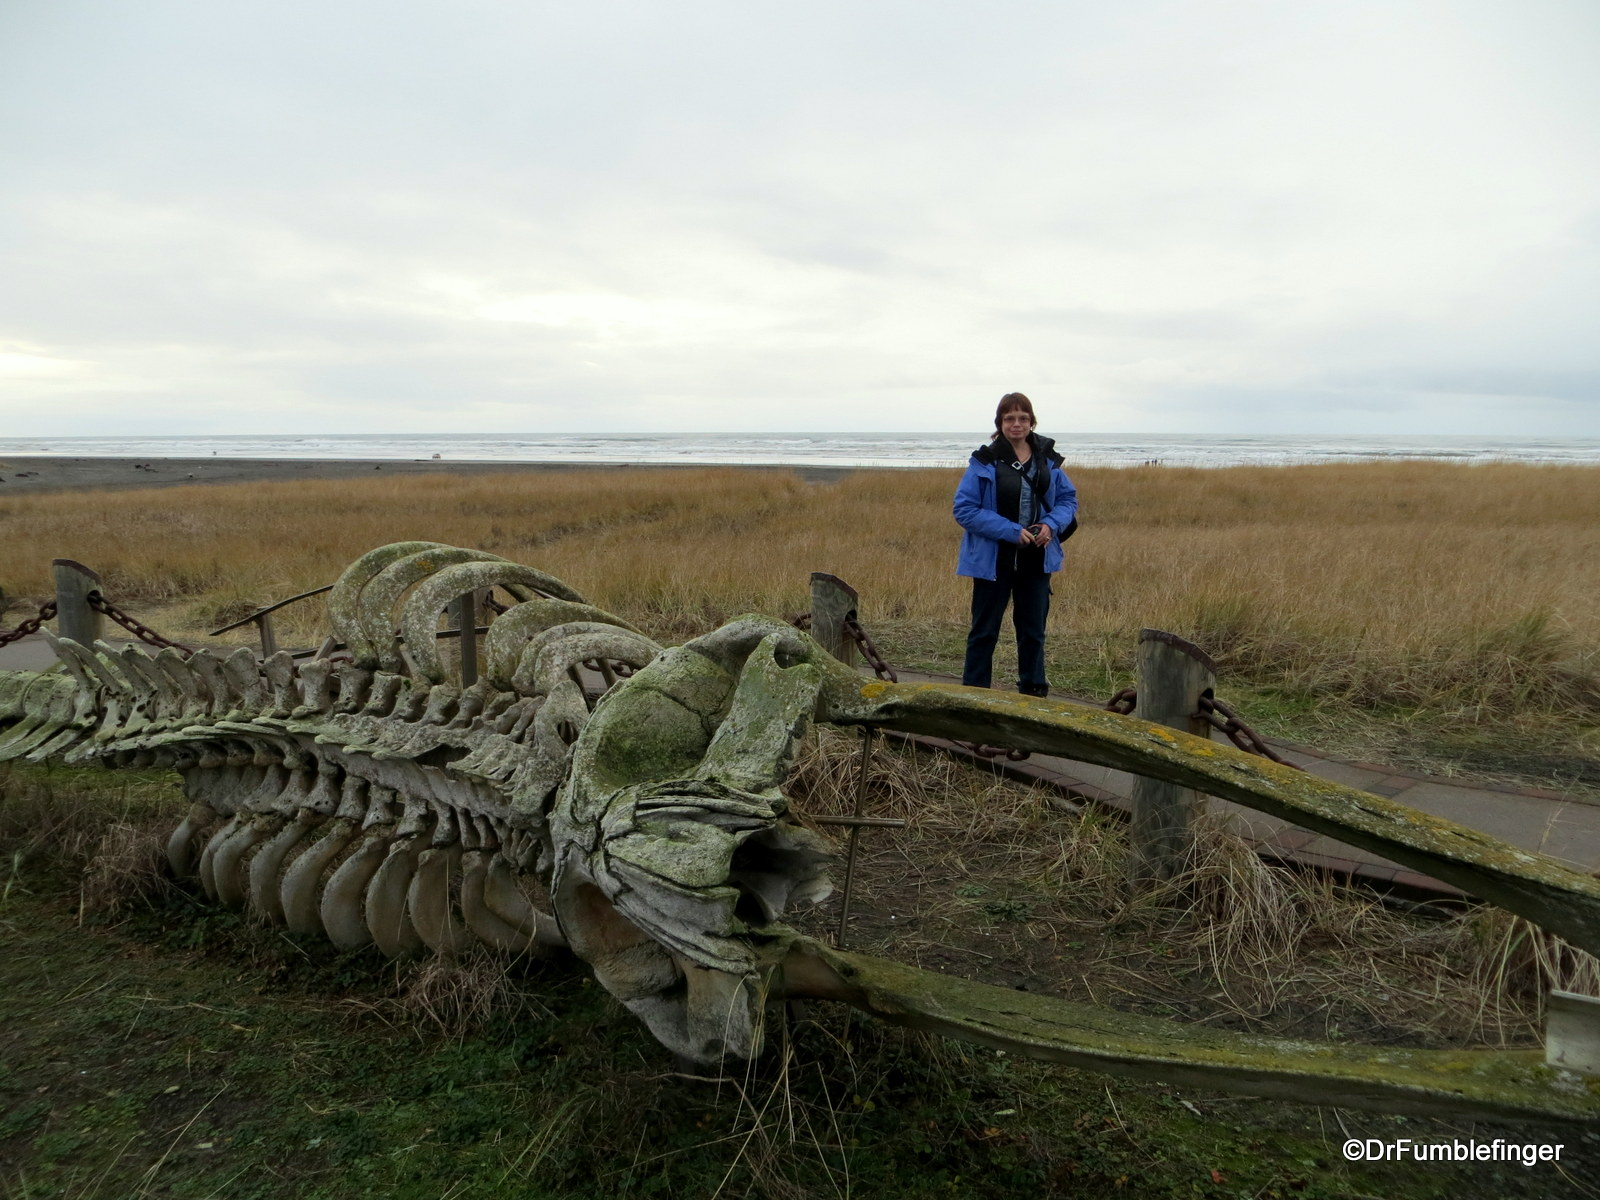 Gray whale skeleton, Discovery Trail